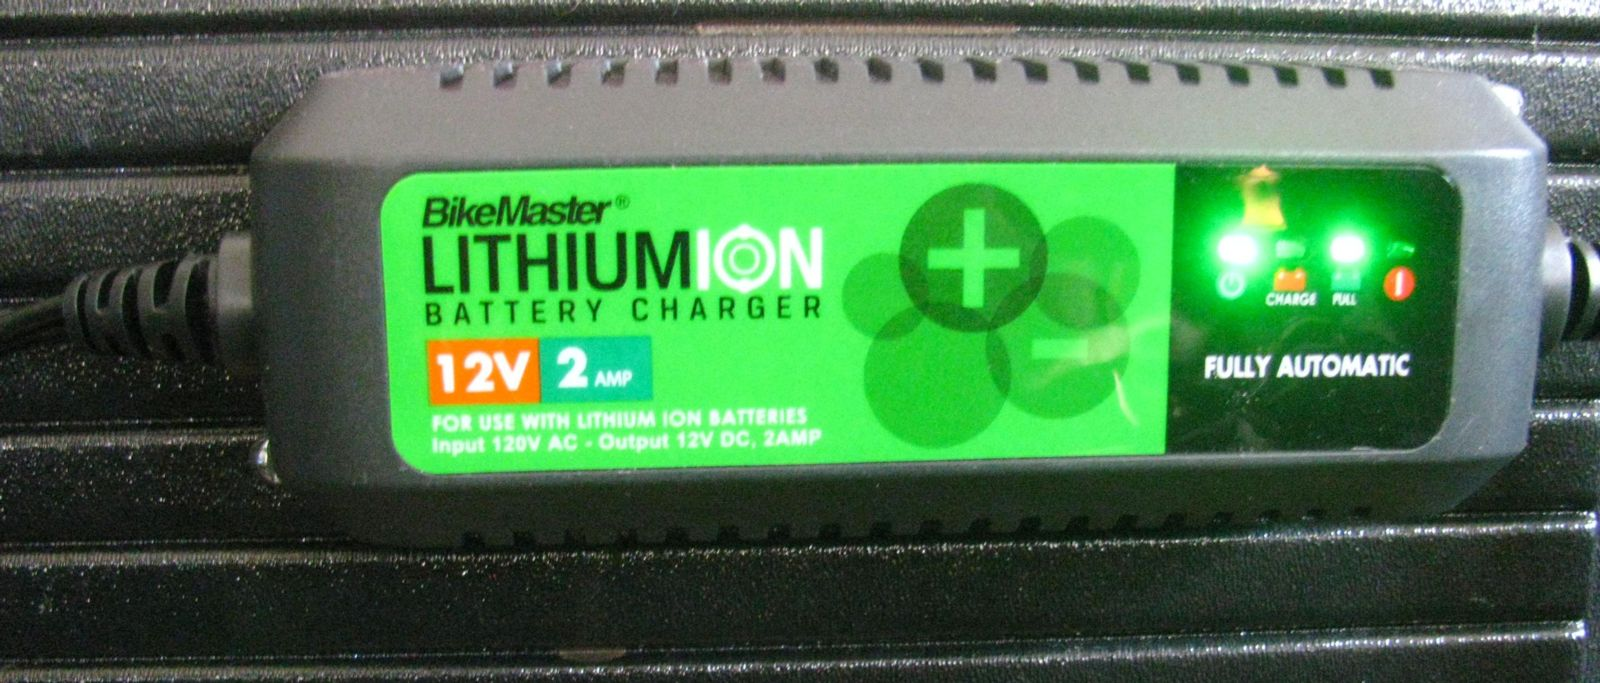 Lithium ion trickle charger